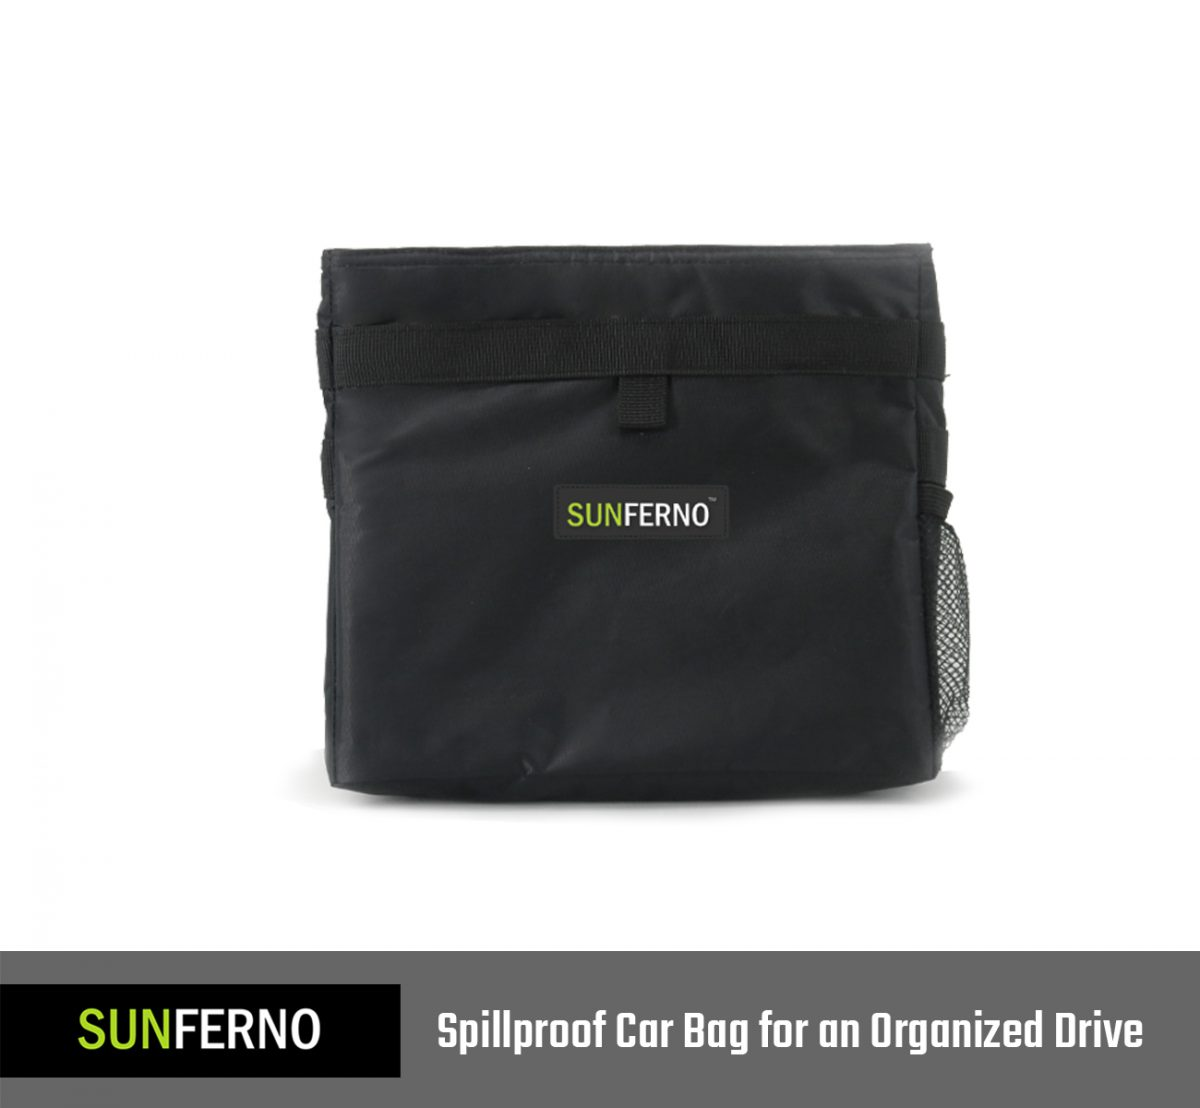 Sunferno Car trash bin Website image